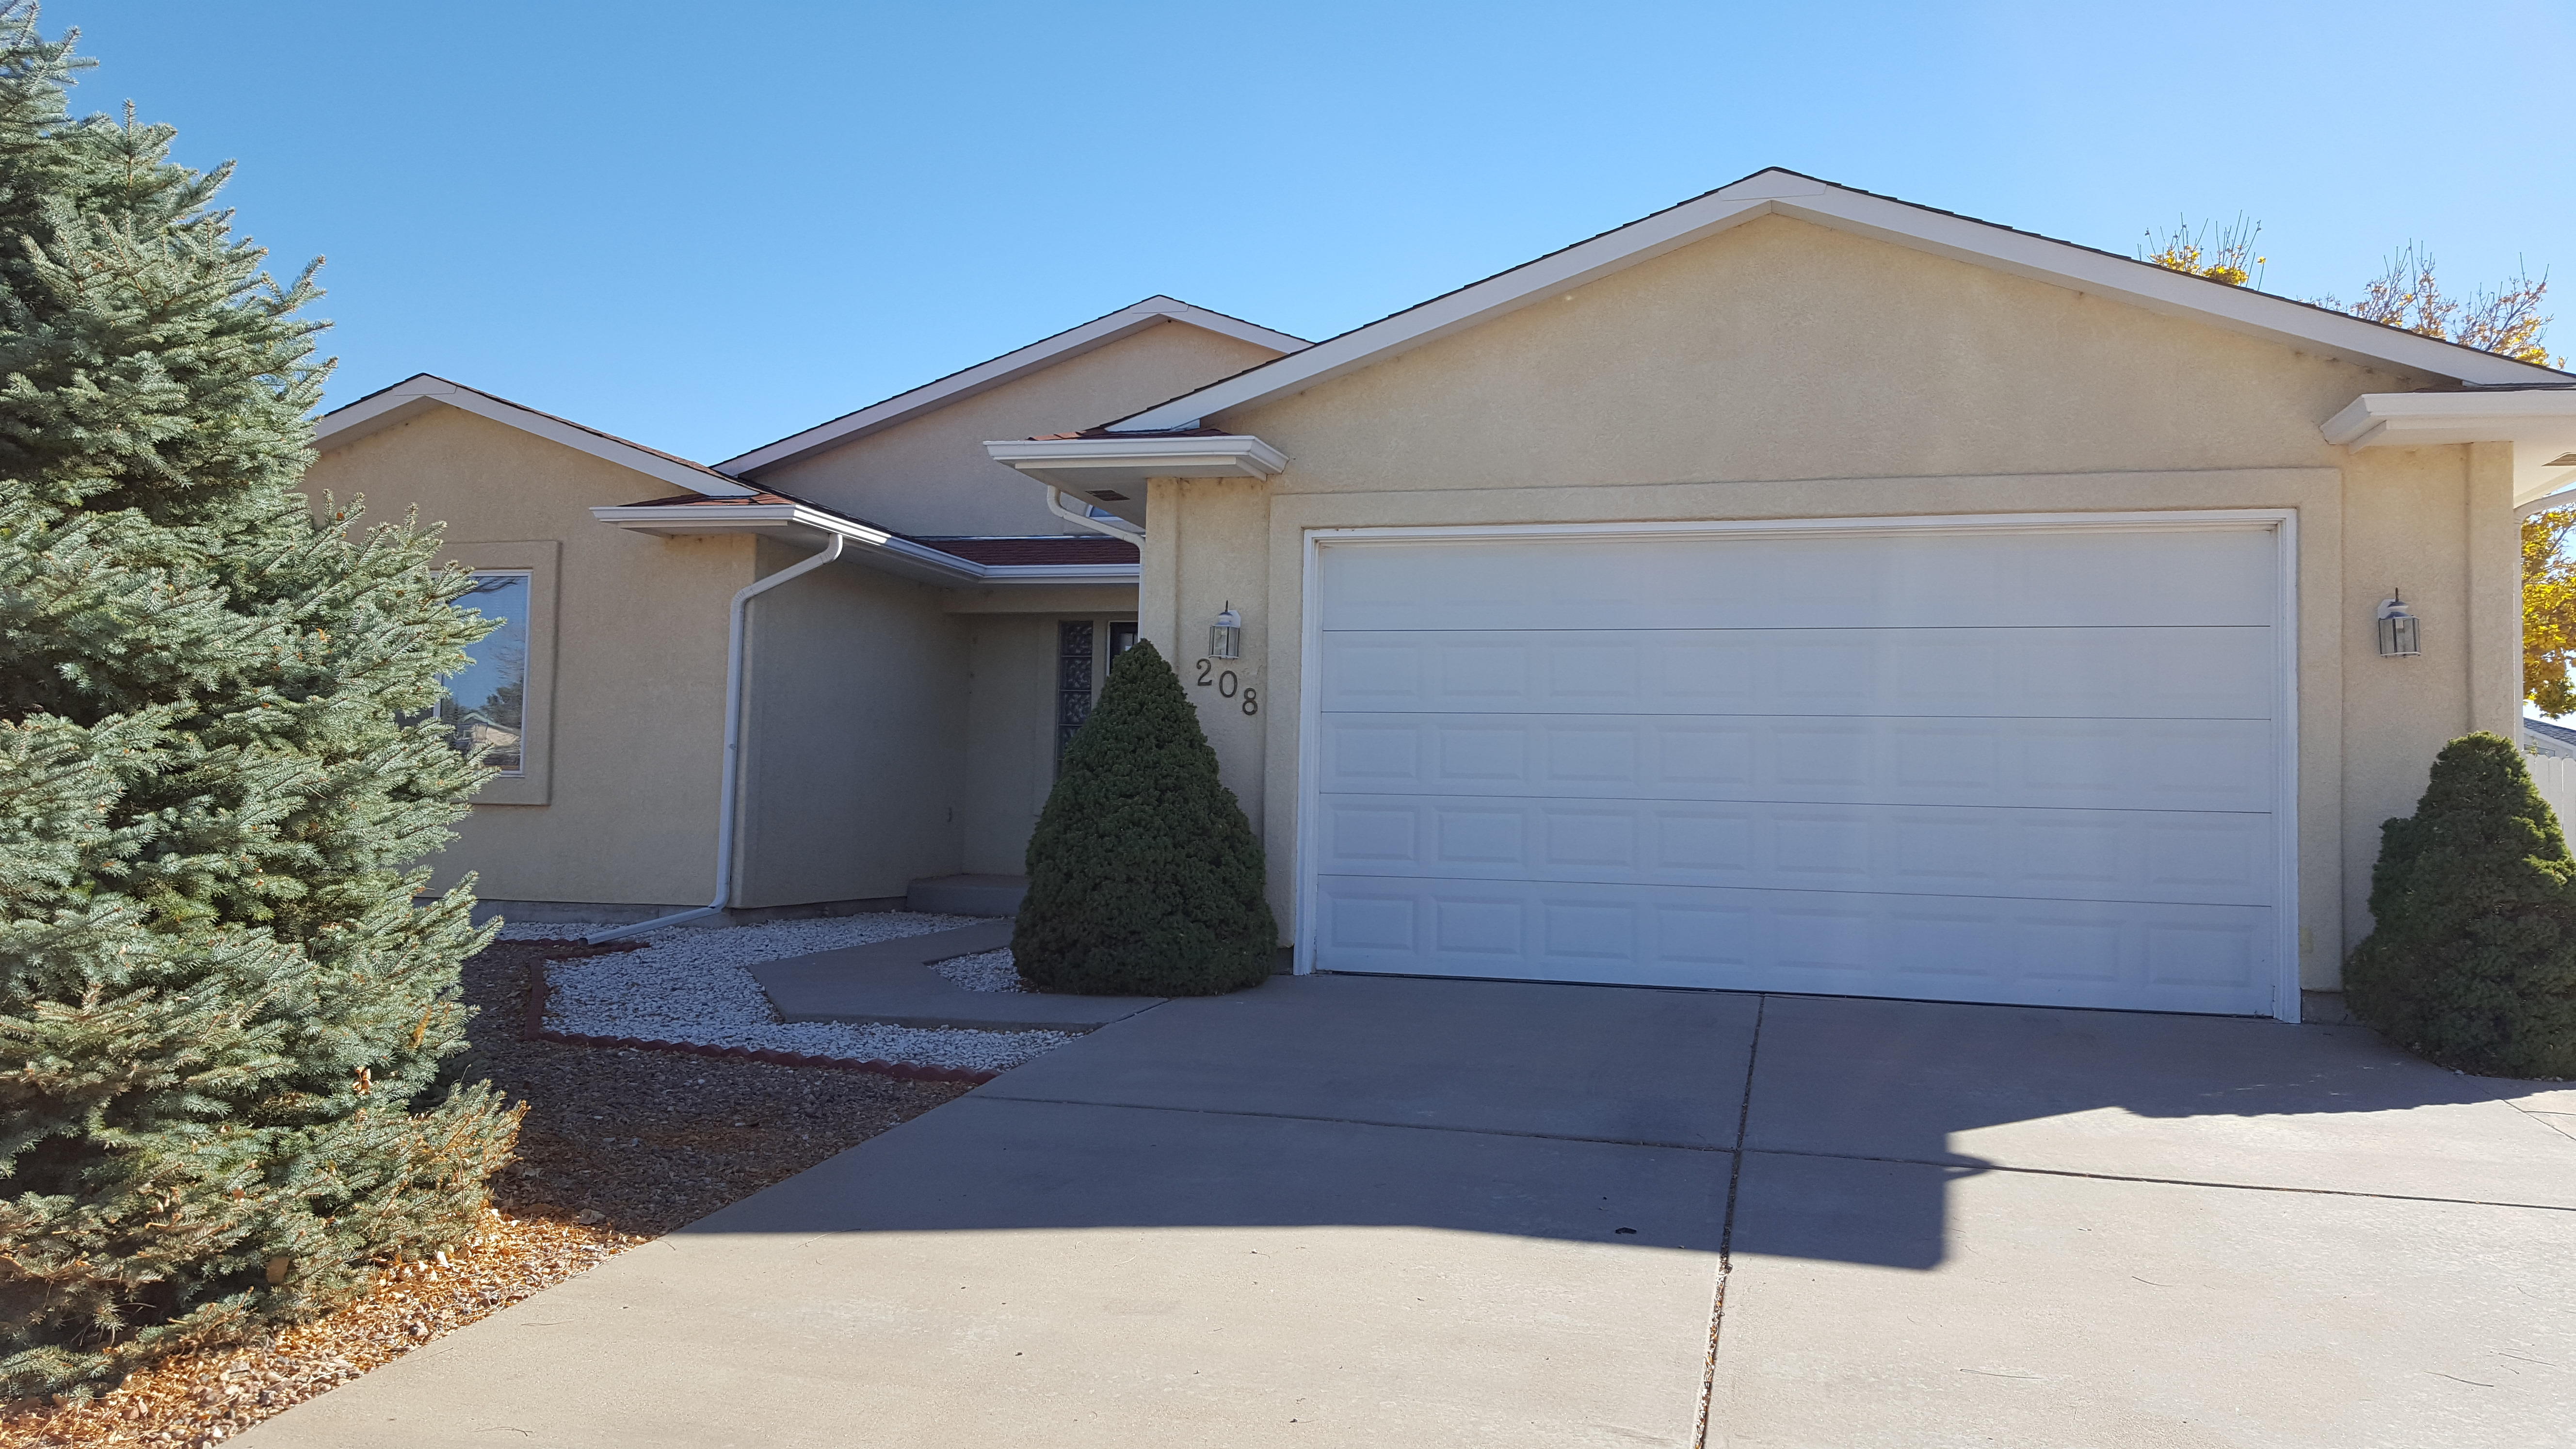 208 S Circle Dr, Pueblo West CO  81007